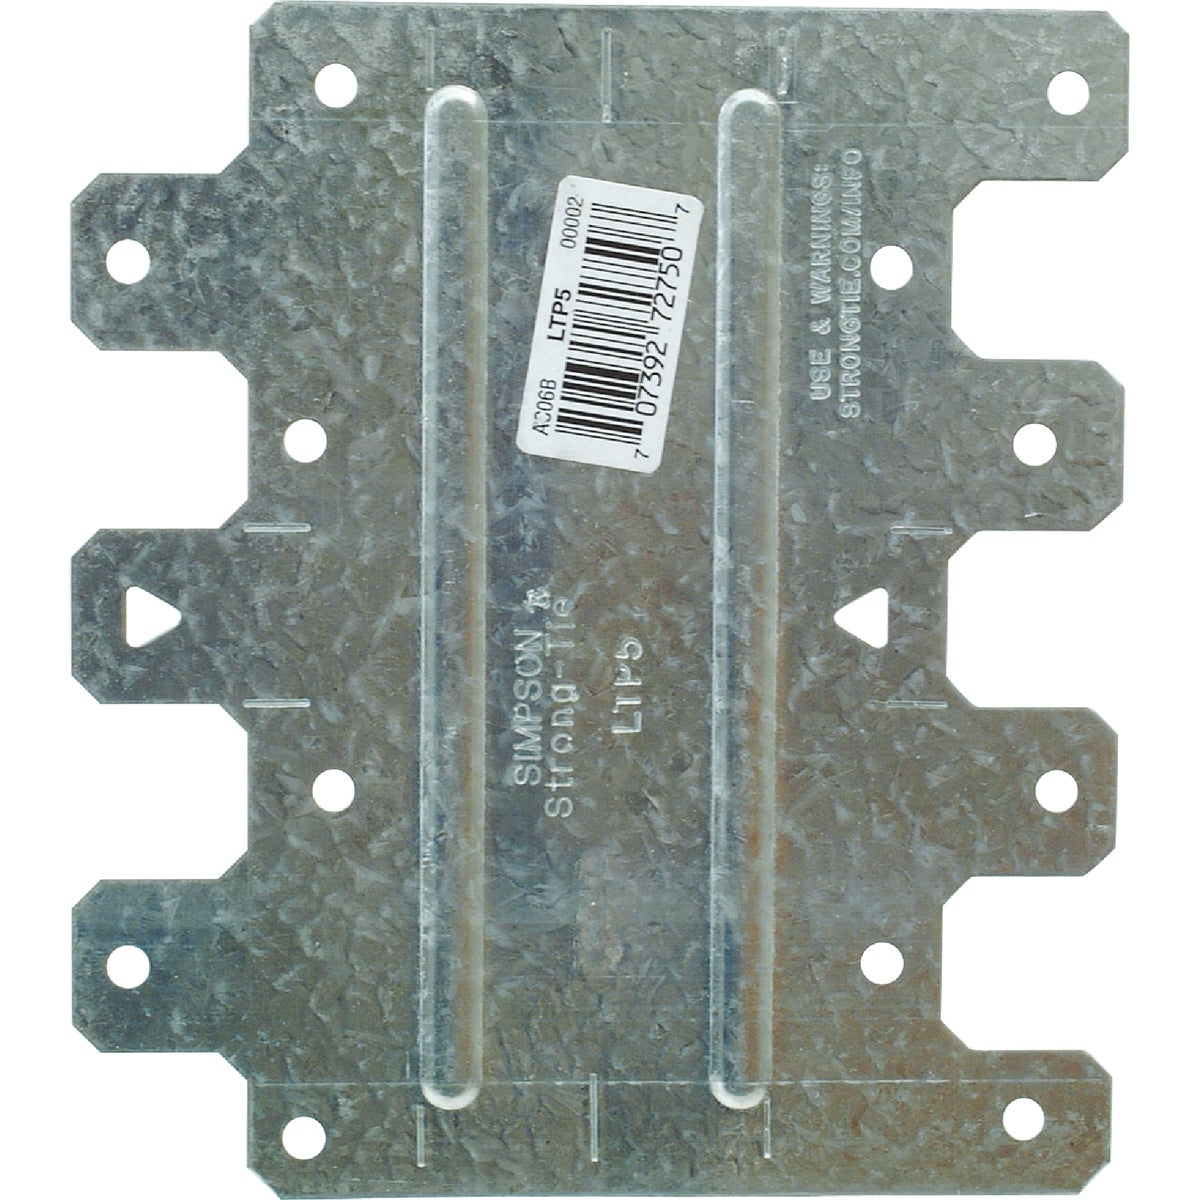 LATERAL TIE PLATE - LTP5 by Simpson Strong Tie